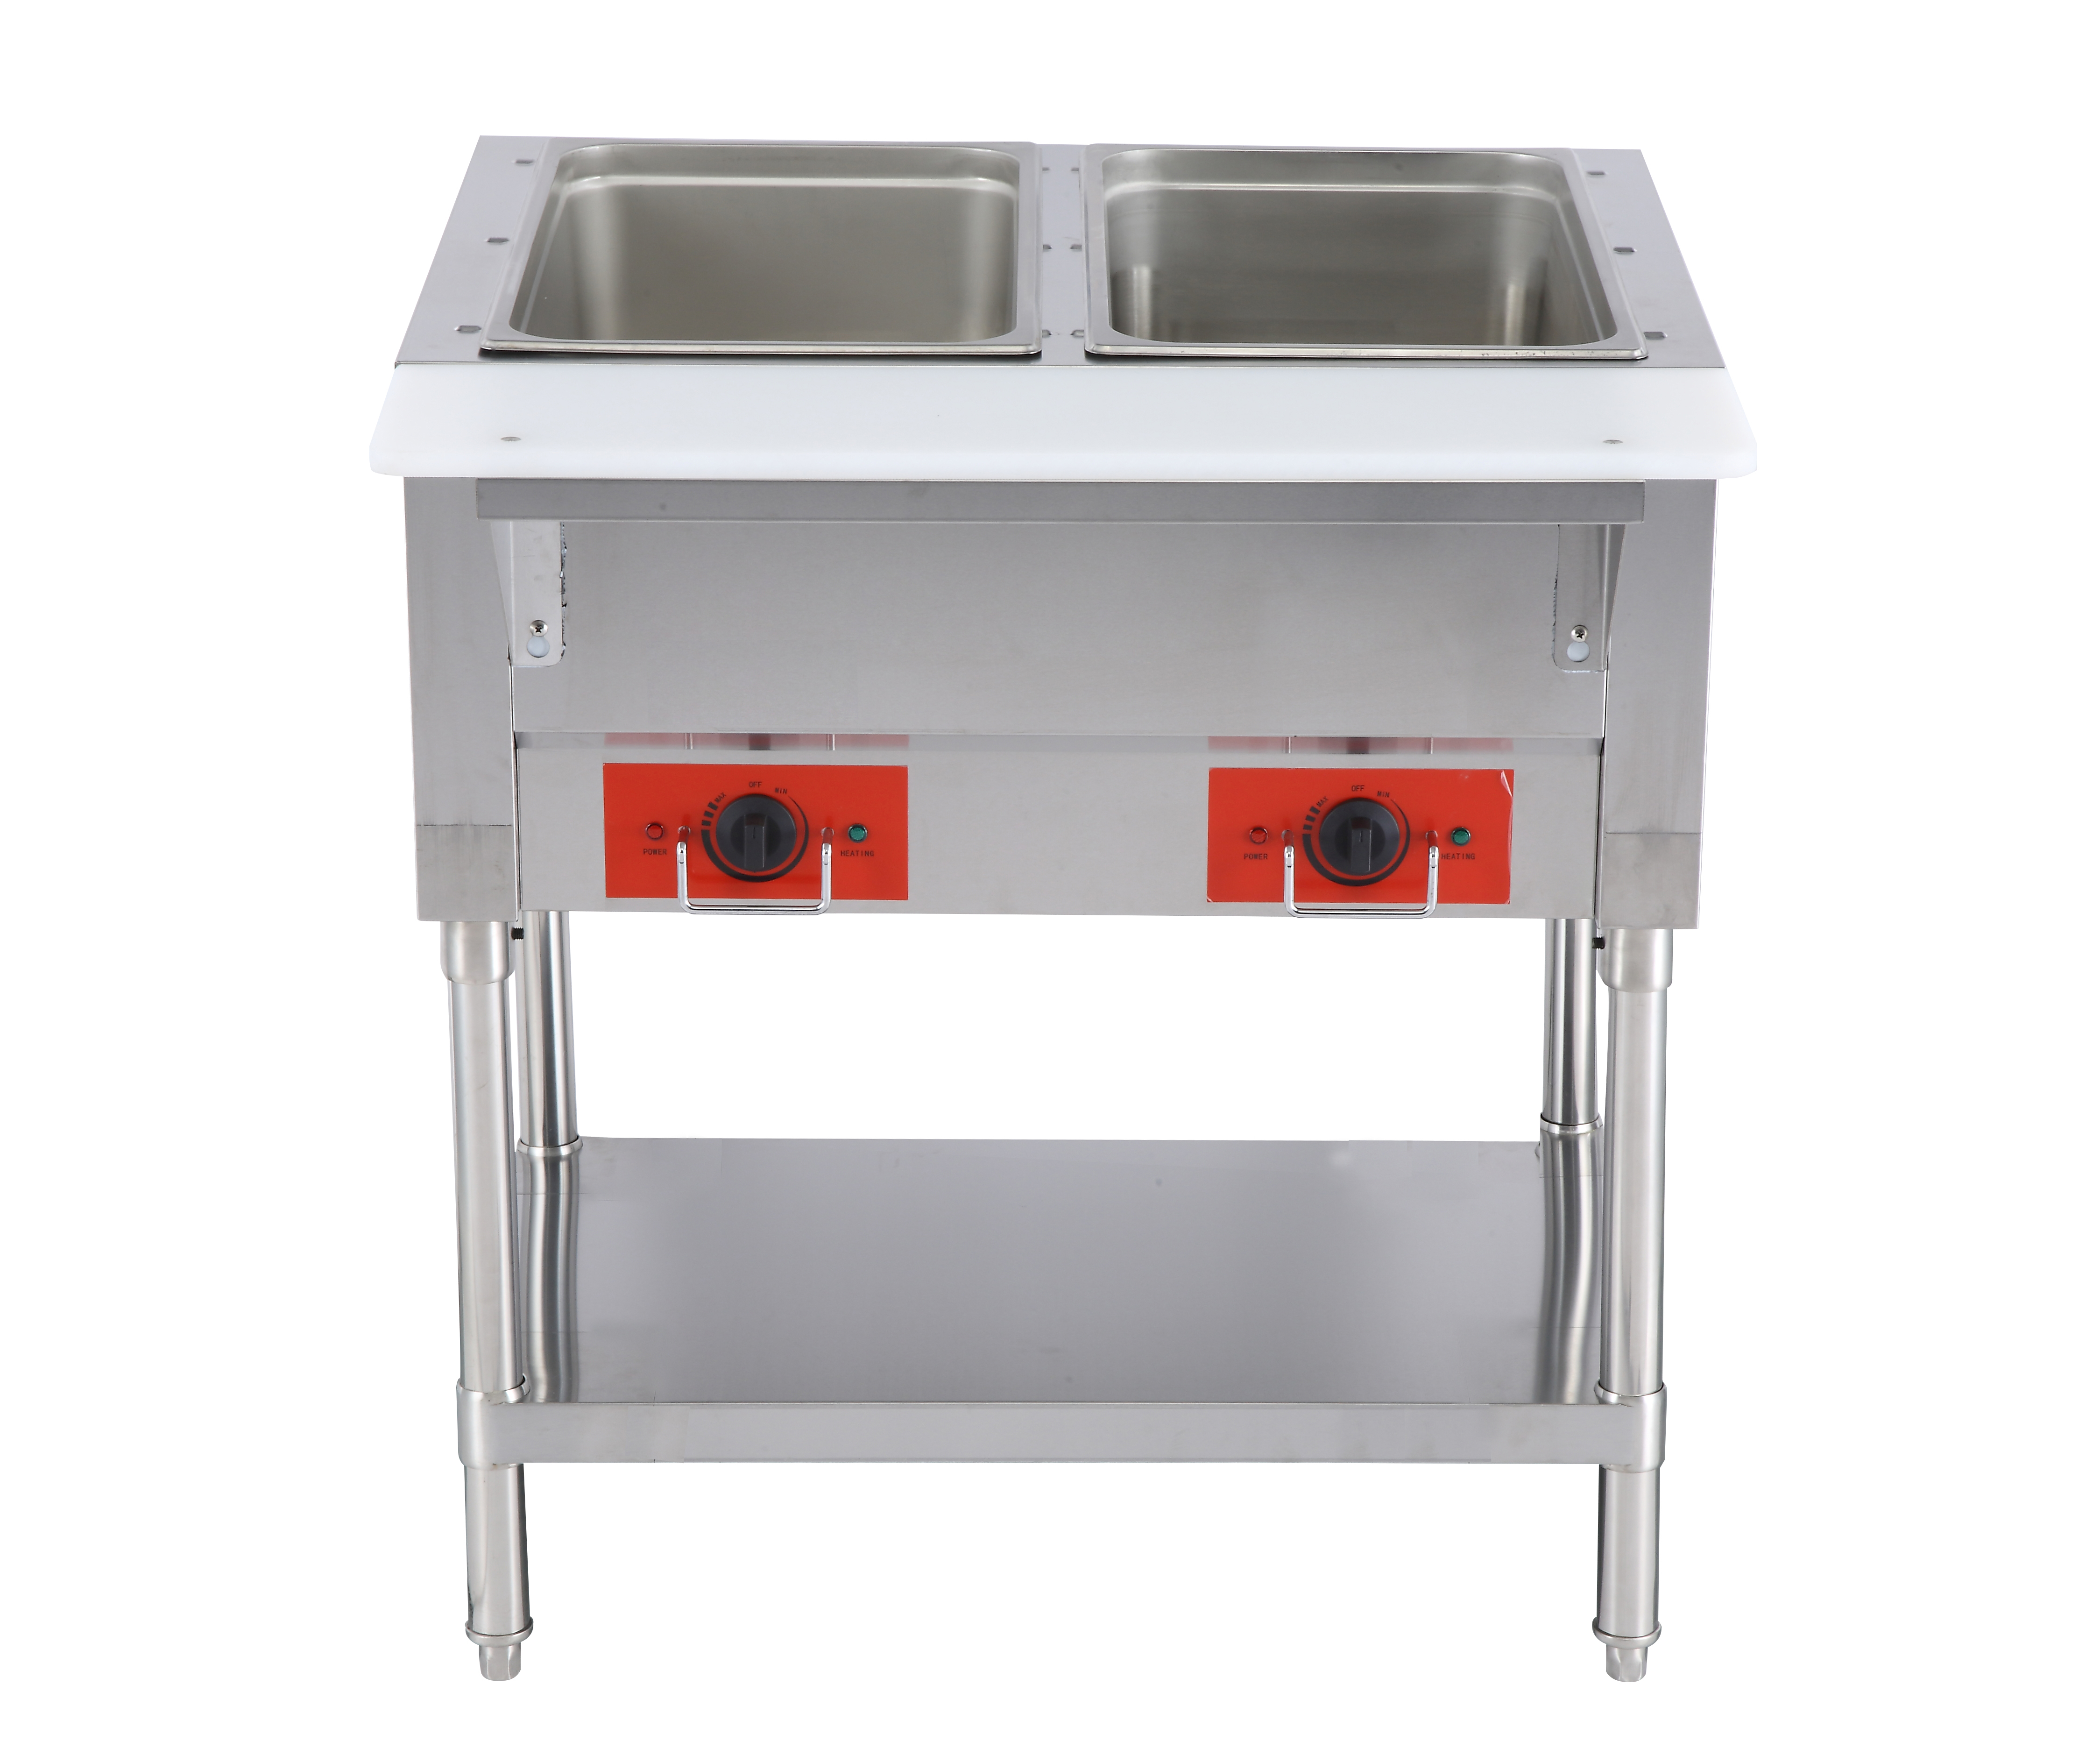 Omcan FW-CN-0002 electric steam tables